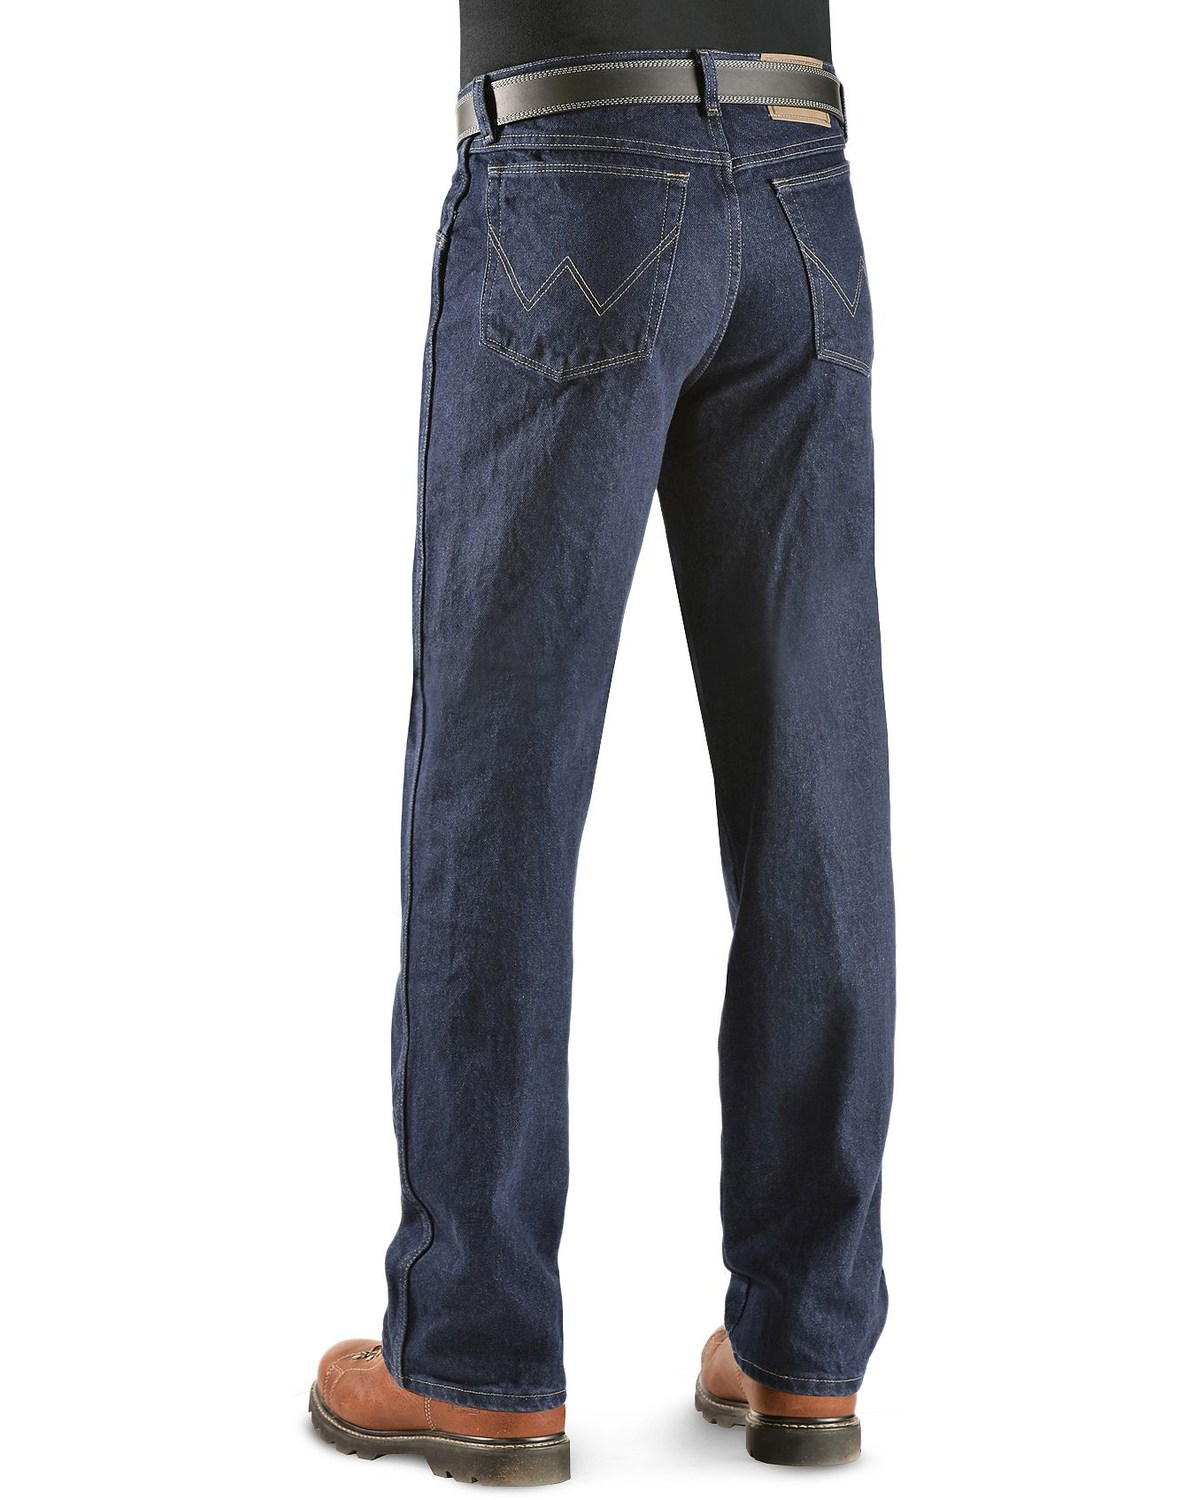 8ac98b65 Zoomed Image Wrangler Rugged Wear Classic Fit Jeans , Indigo, hi-res